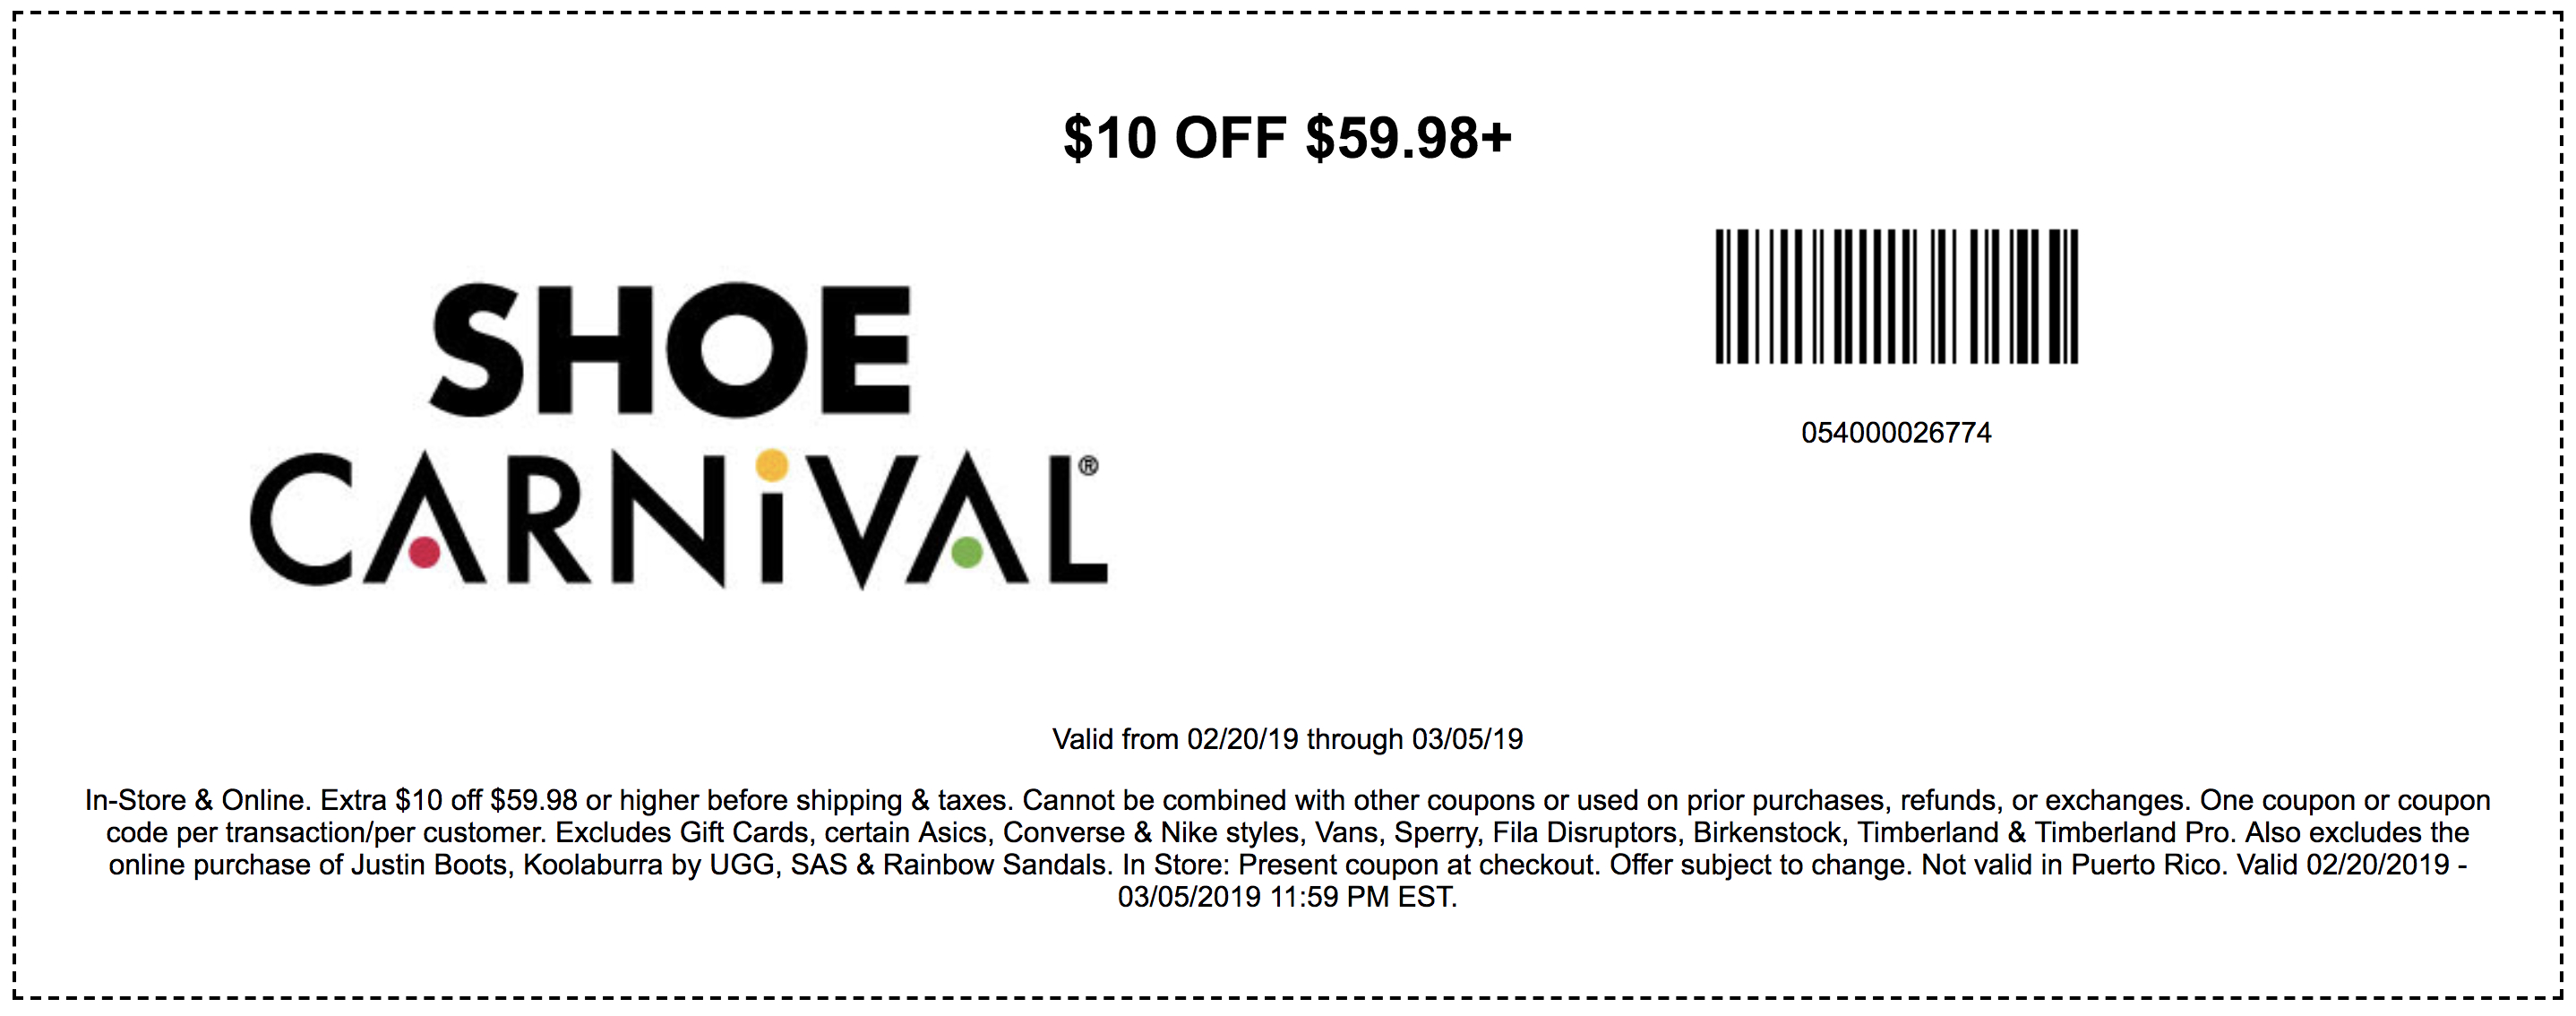 Shoe Carnival Coupons In Store (Printable Coupons) - 2019 - Free Printable Coupons For Dsw Shoes